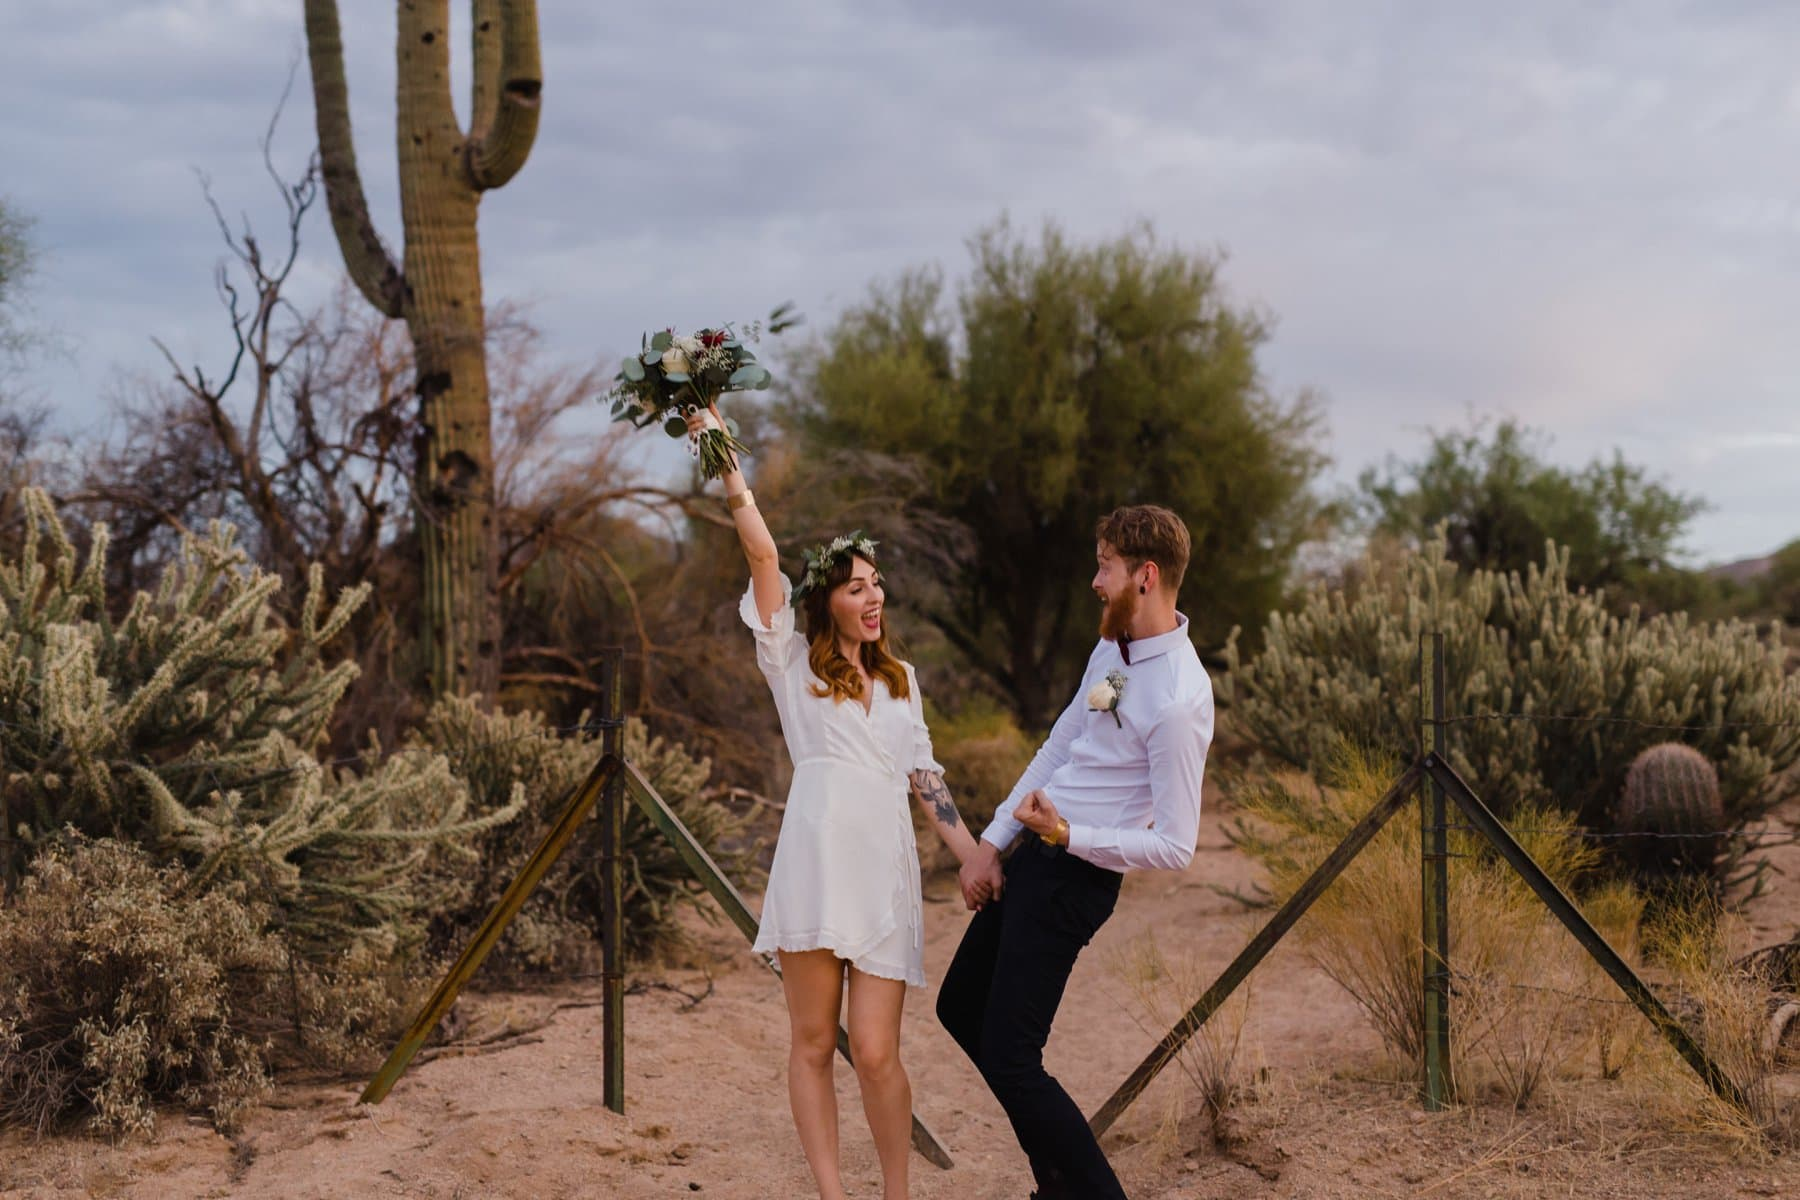 joyful cute outdoor elopement in the desert Arizona